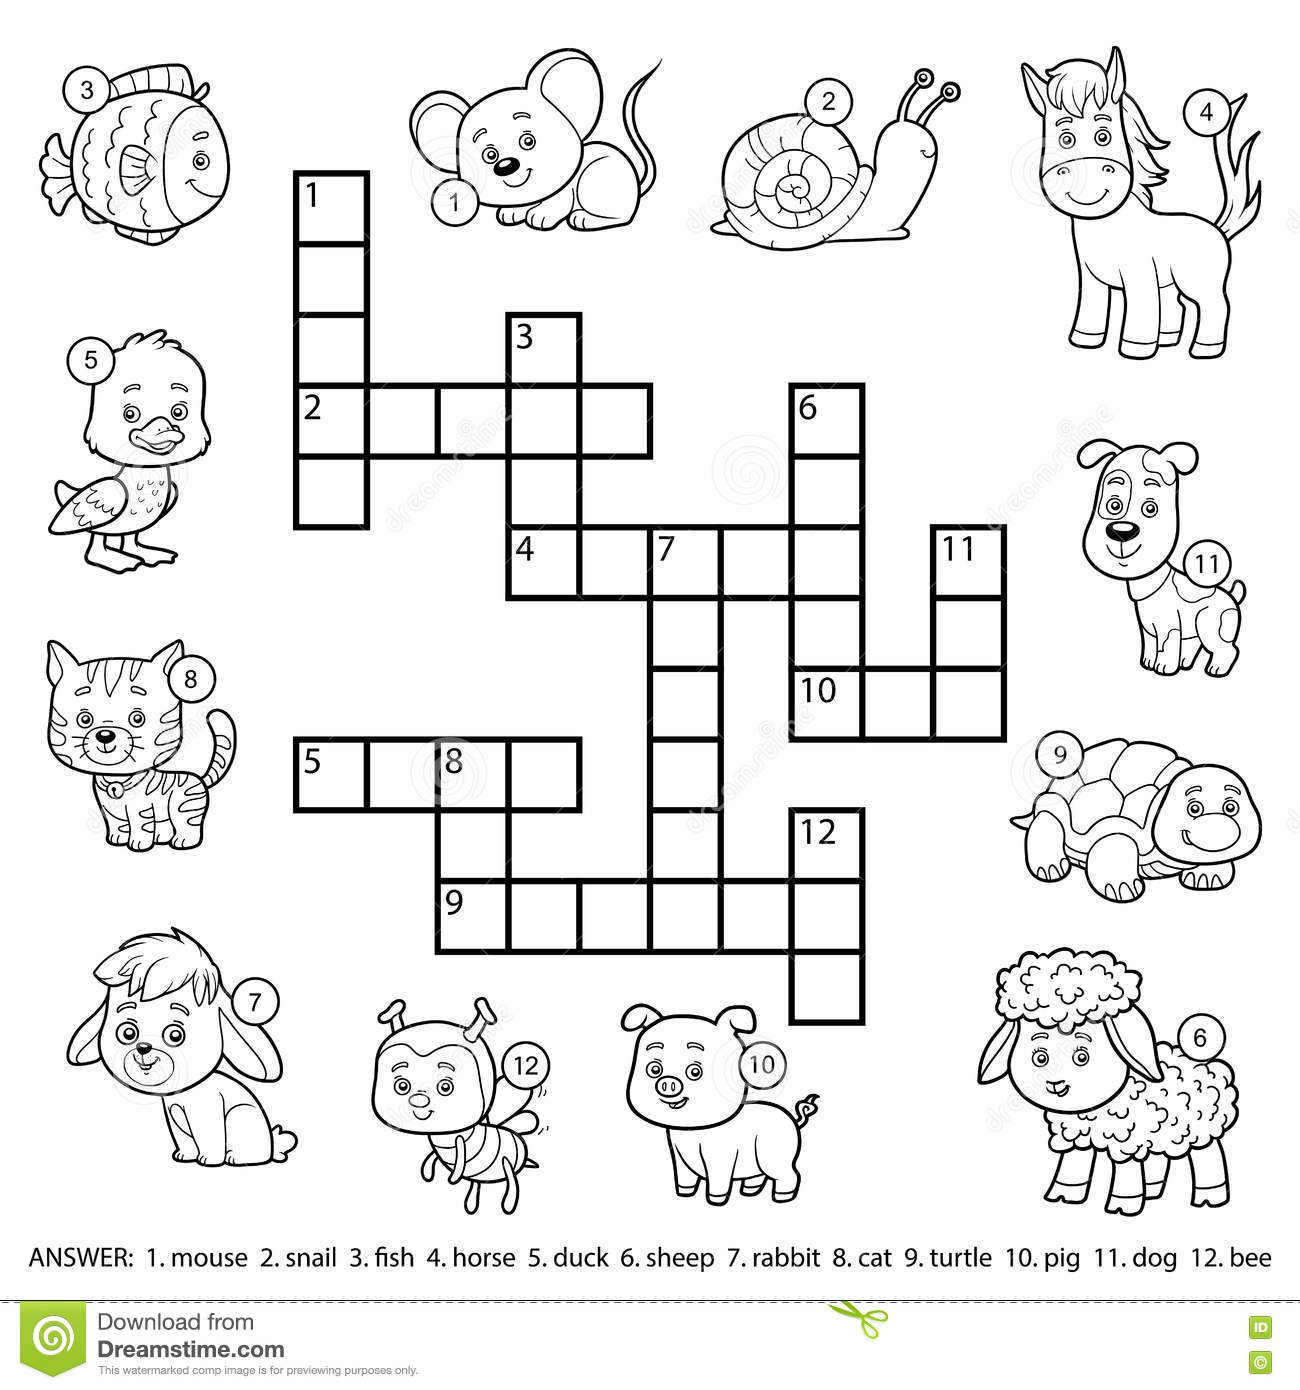 Clothes vocabulary crossword pdf